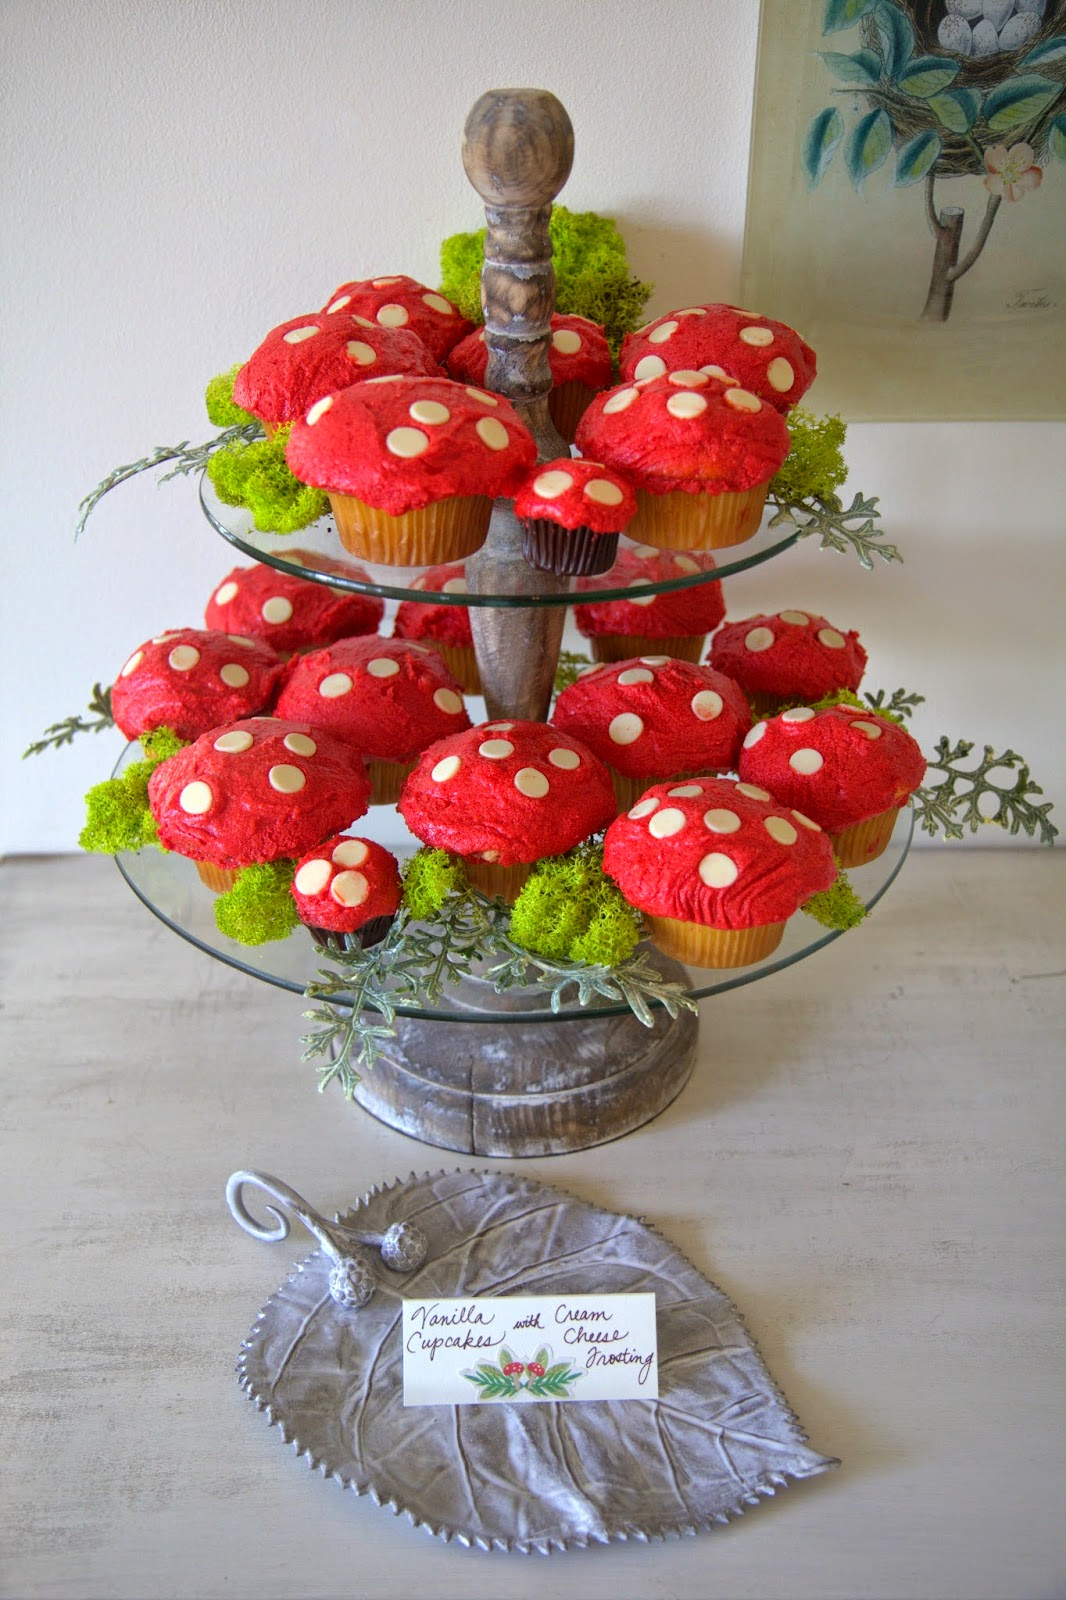 Woodland Party; Red Mushroom Cupckaes for dessert, party food: Nora's Nest